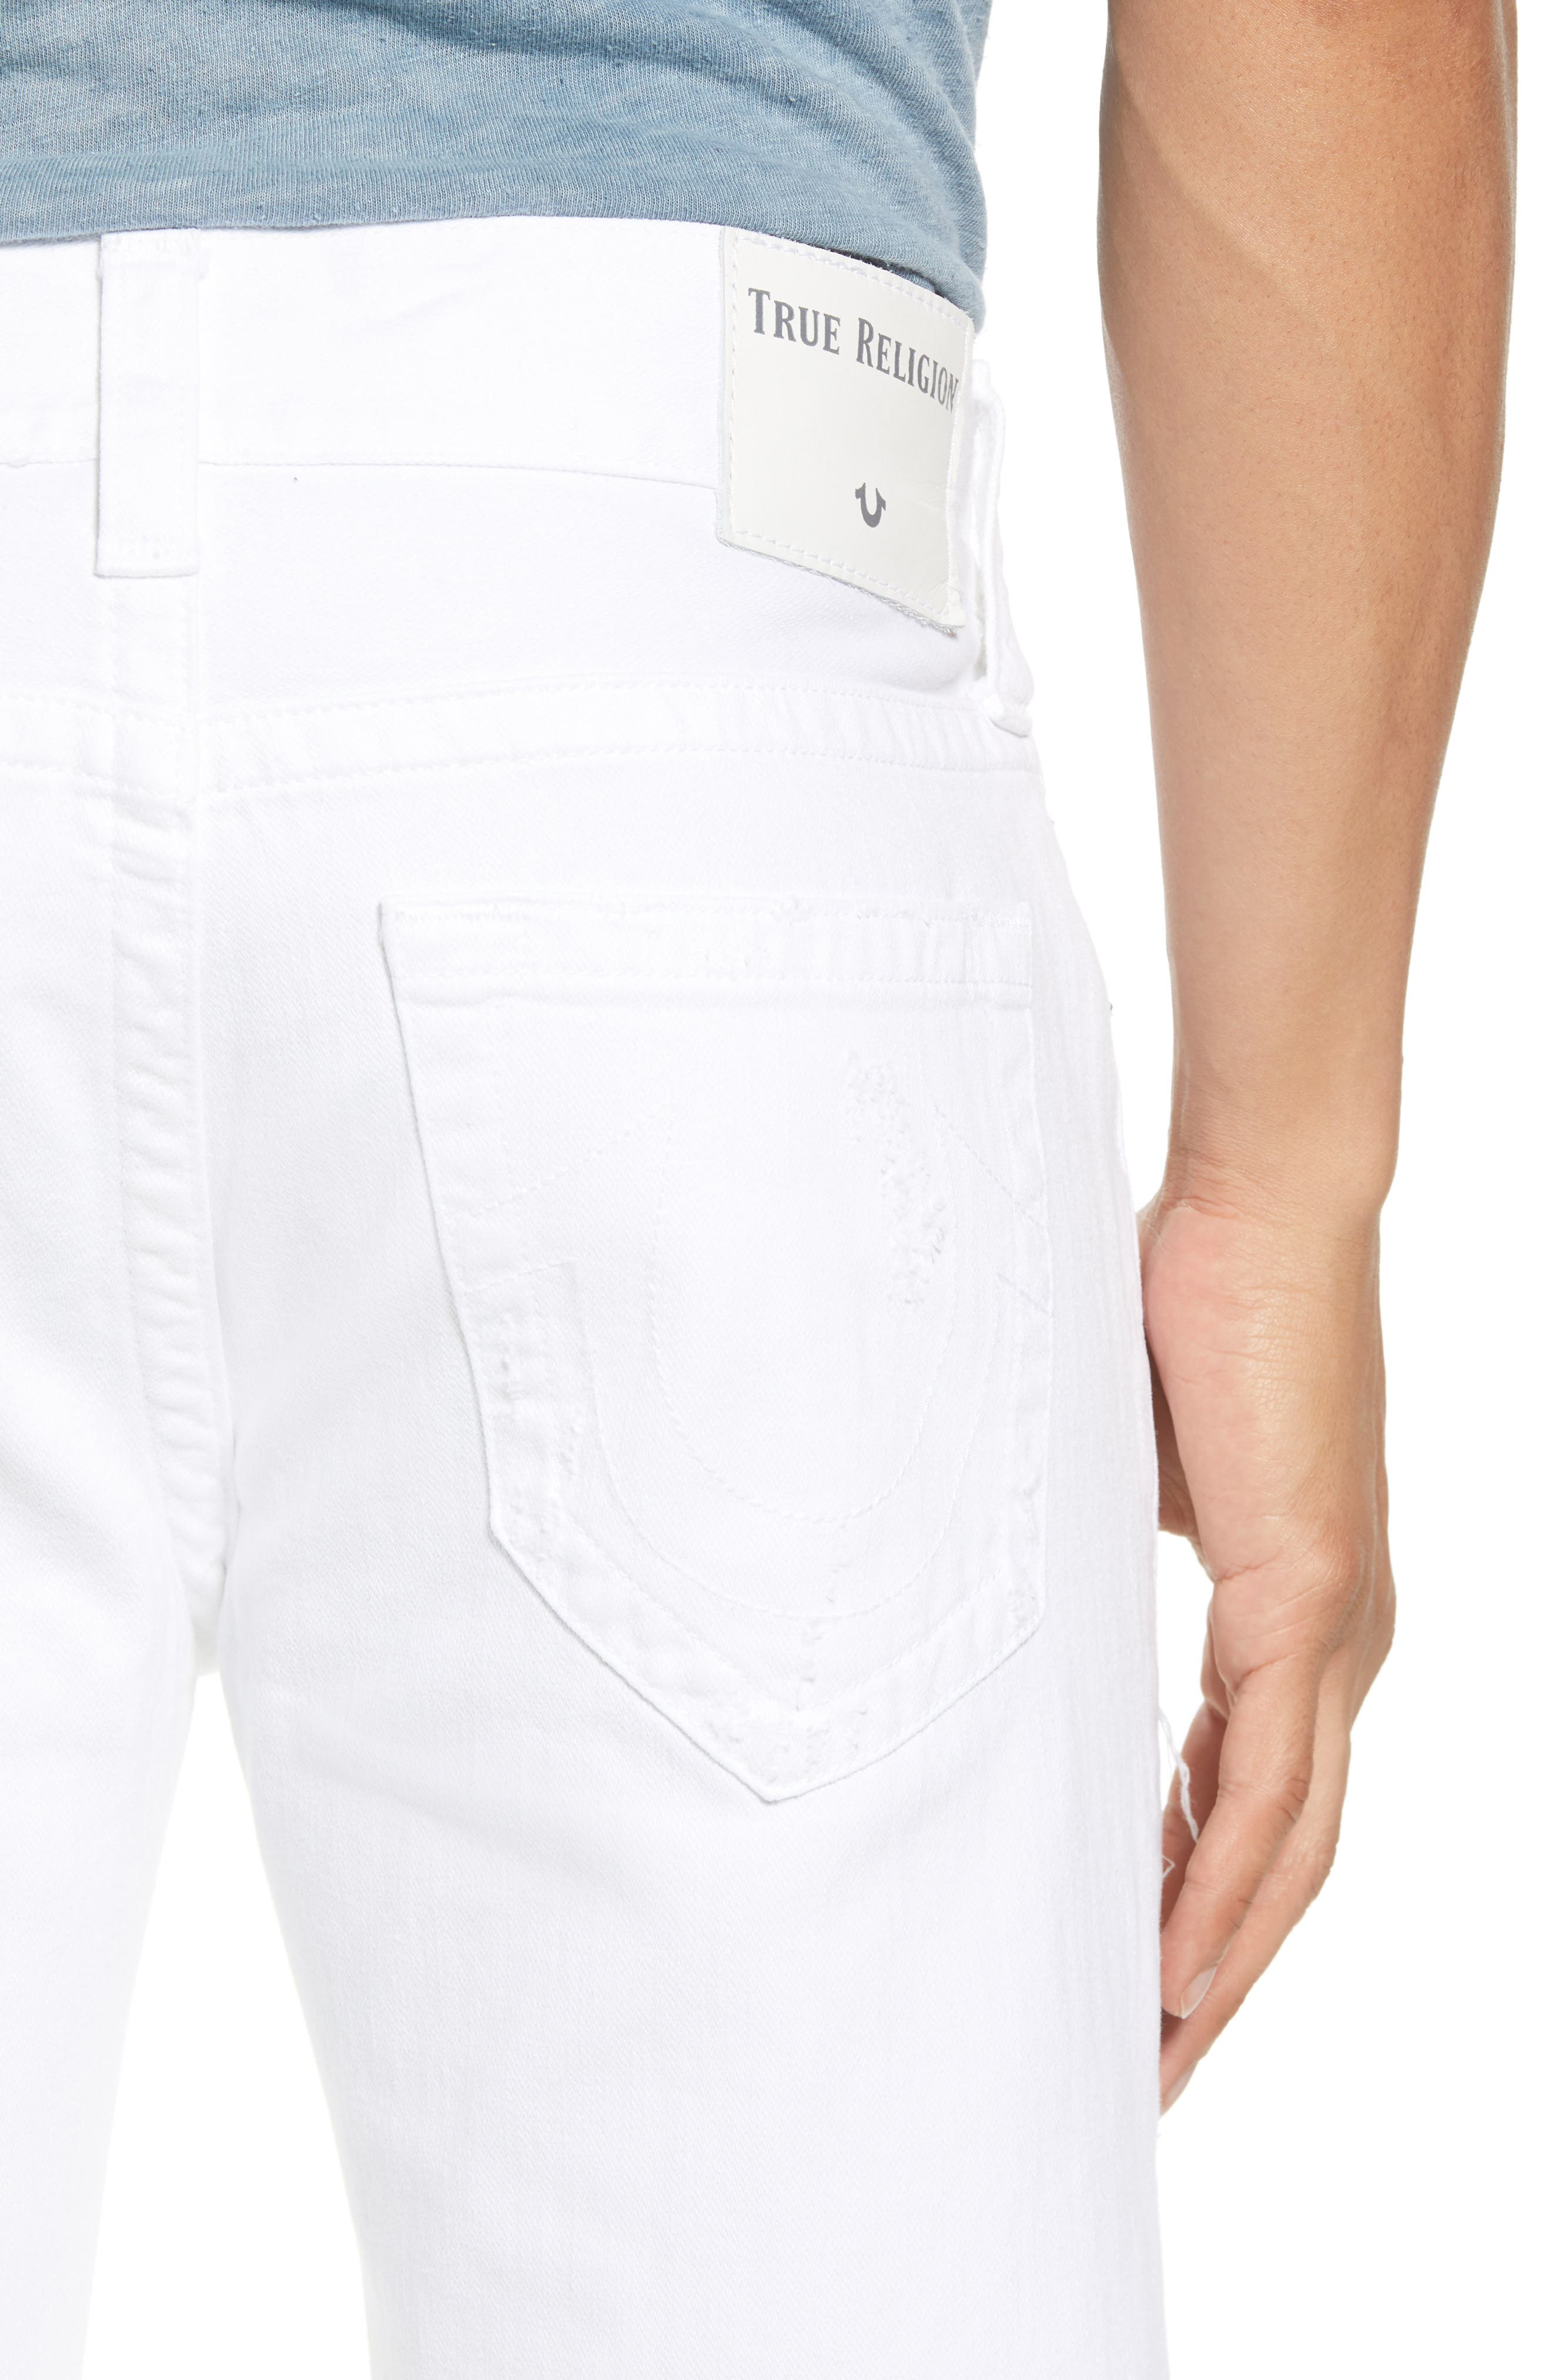 Rocco Skinny Fit jeans,                             Alternate thumbnail 3, color,                             White Volcanic Ash